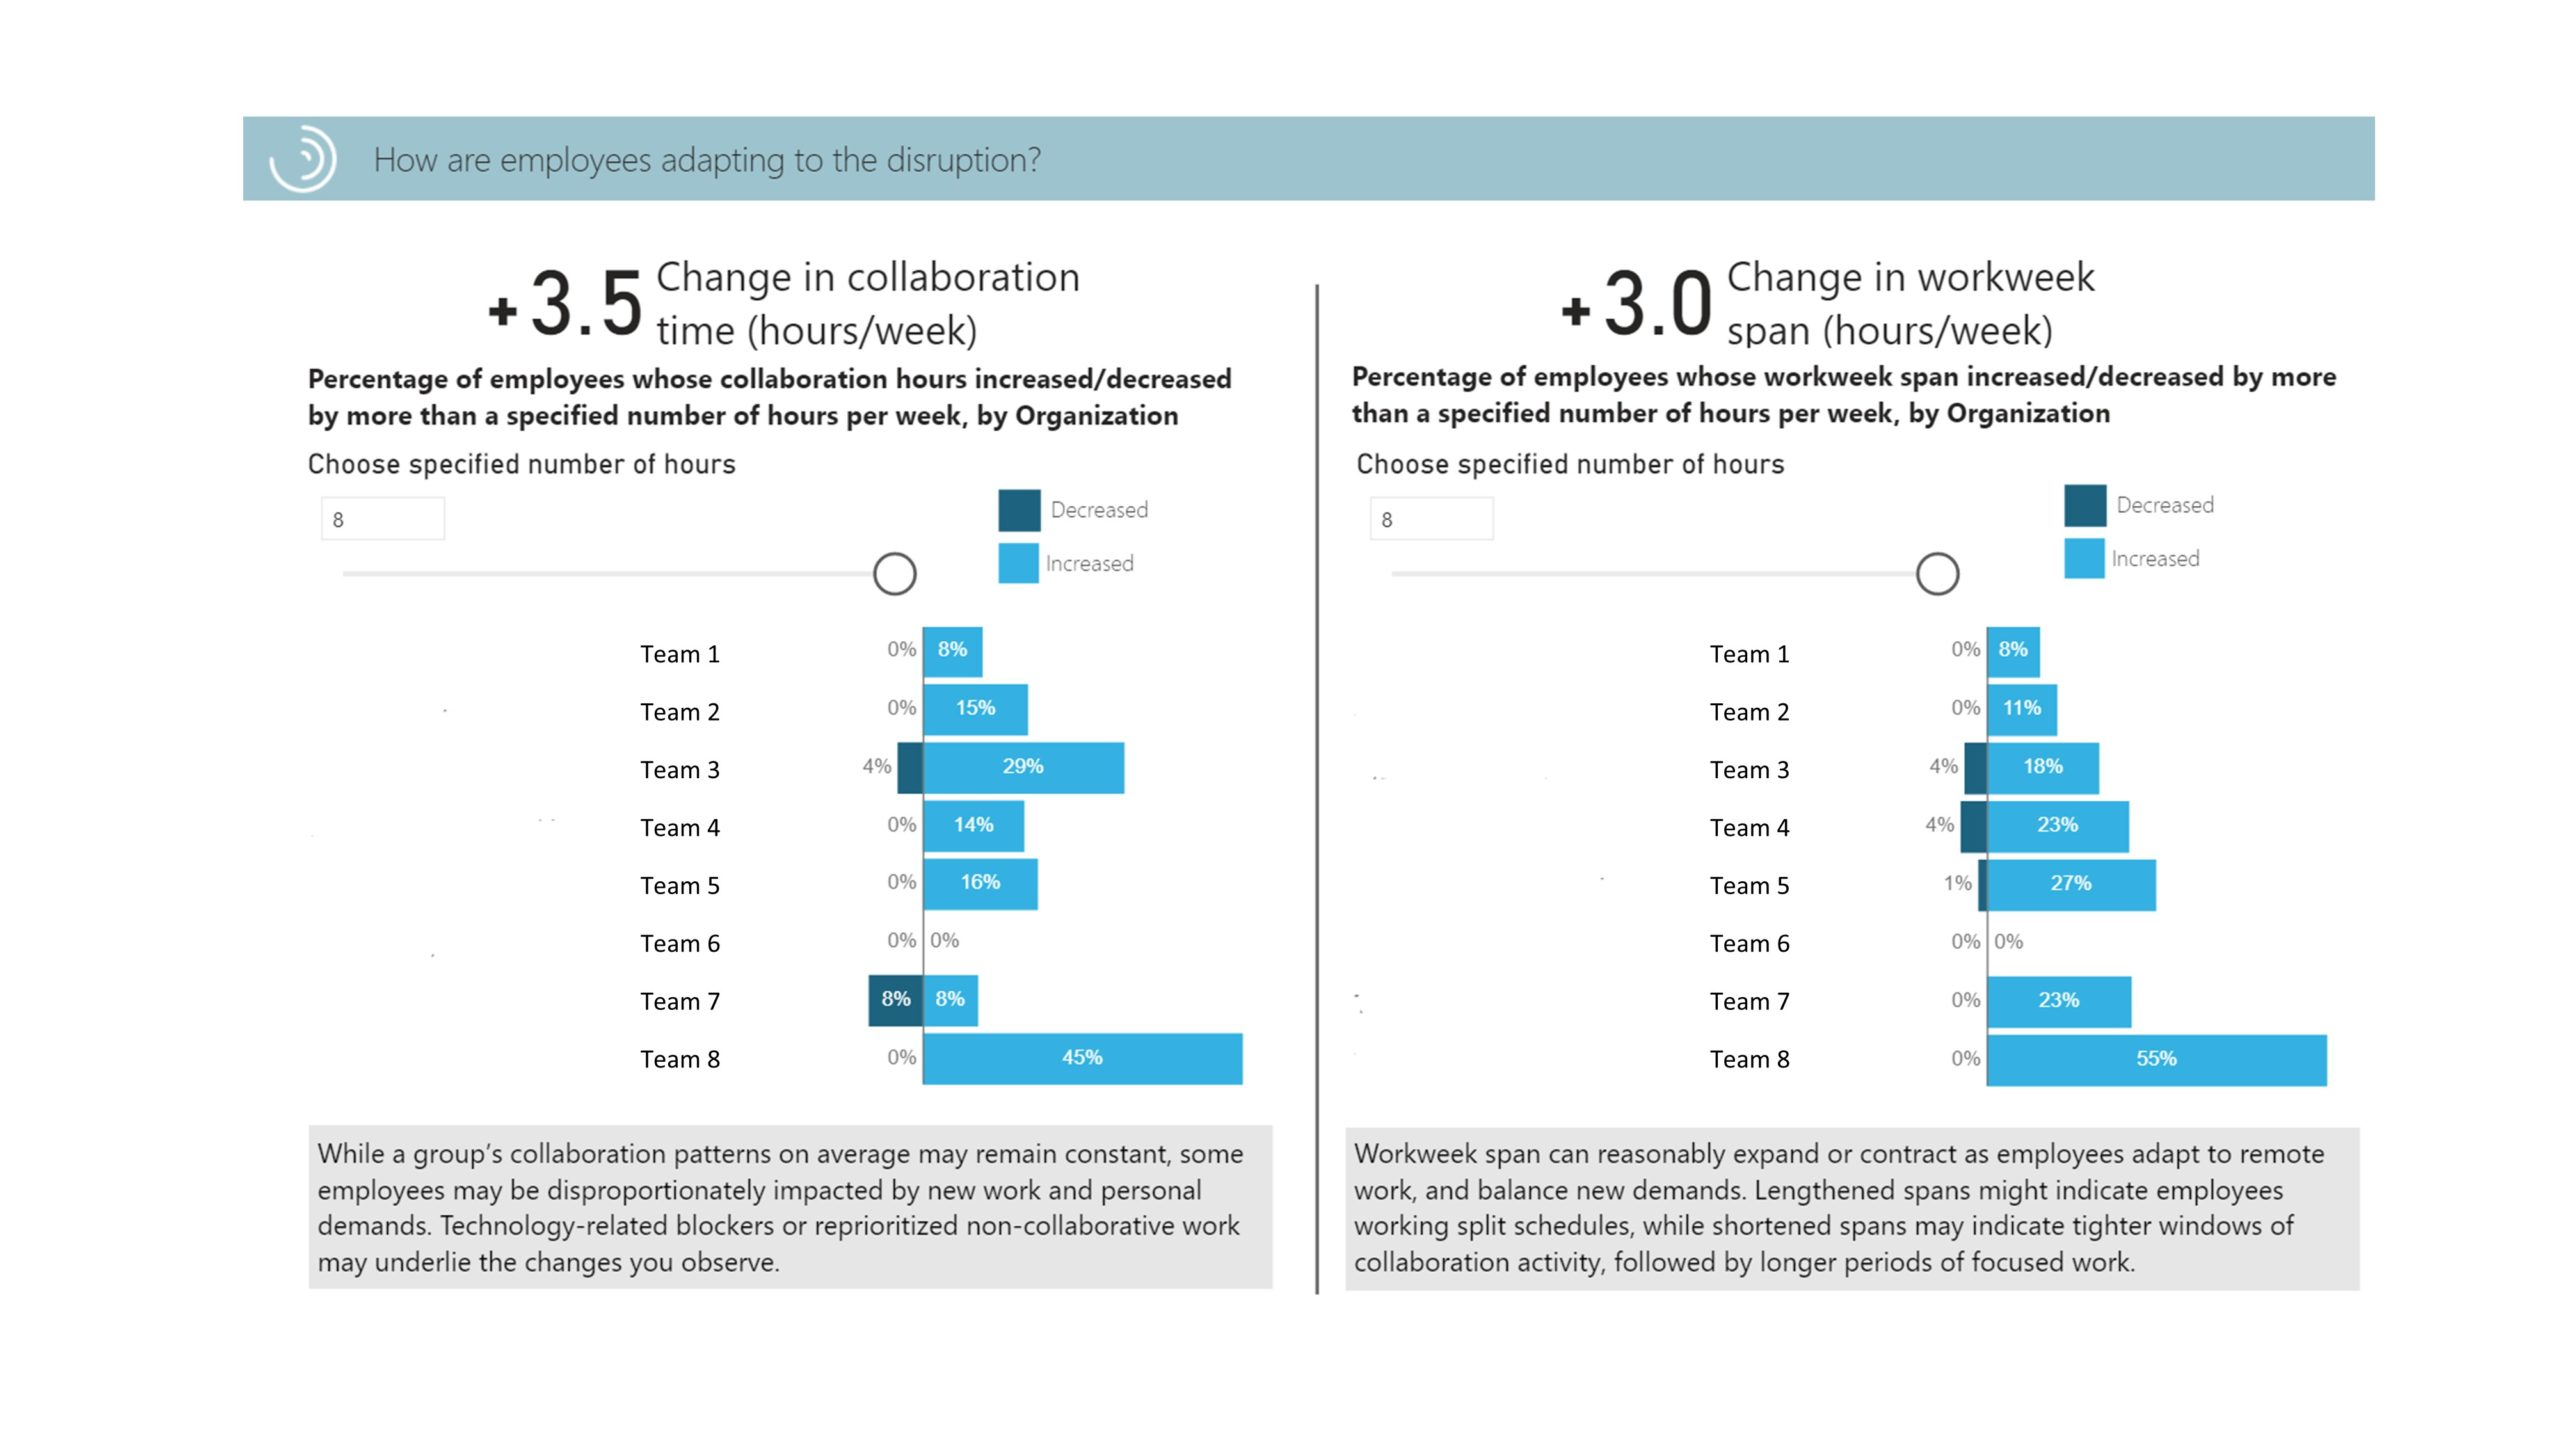 Dashboard of business continuity showing how employees are adapting to disruption